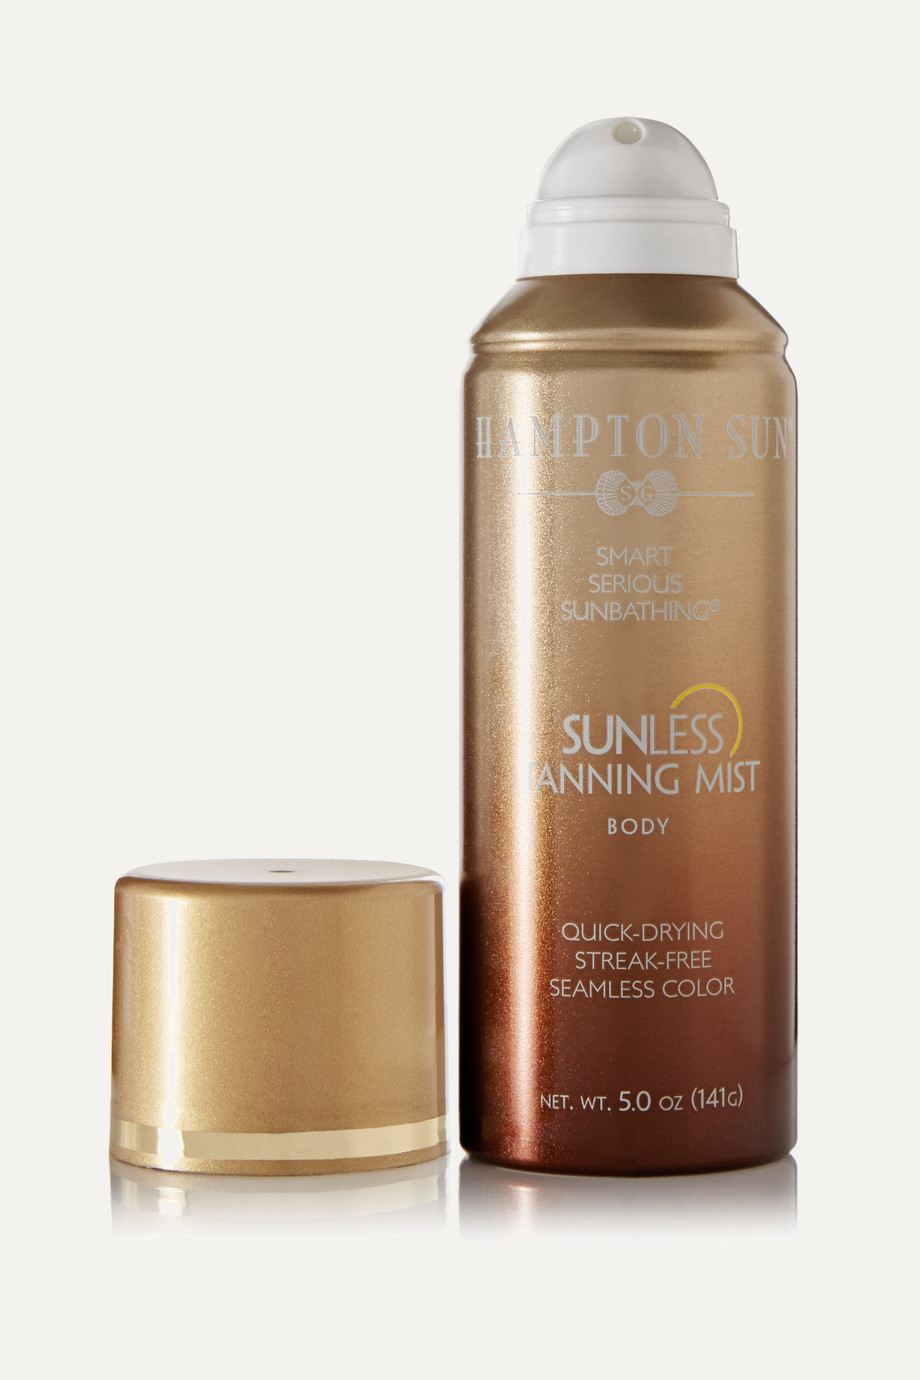 Hampton Sun Sunless Tanning Mist, 130ml